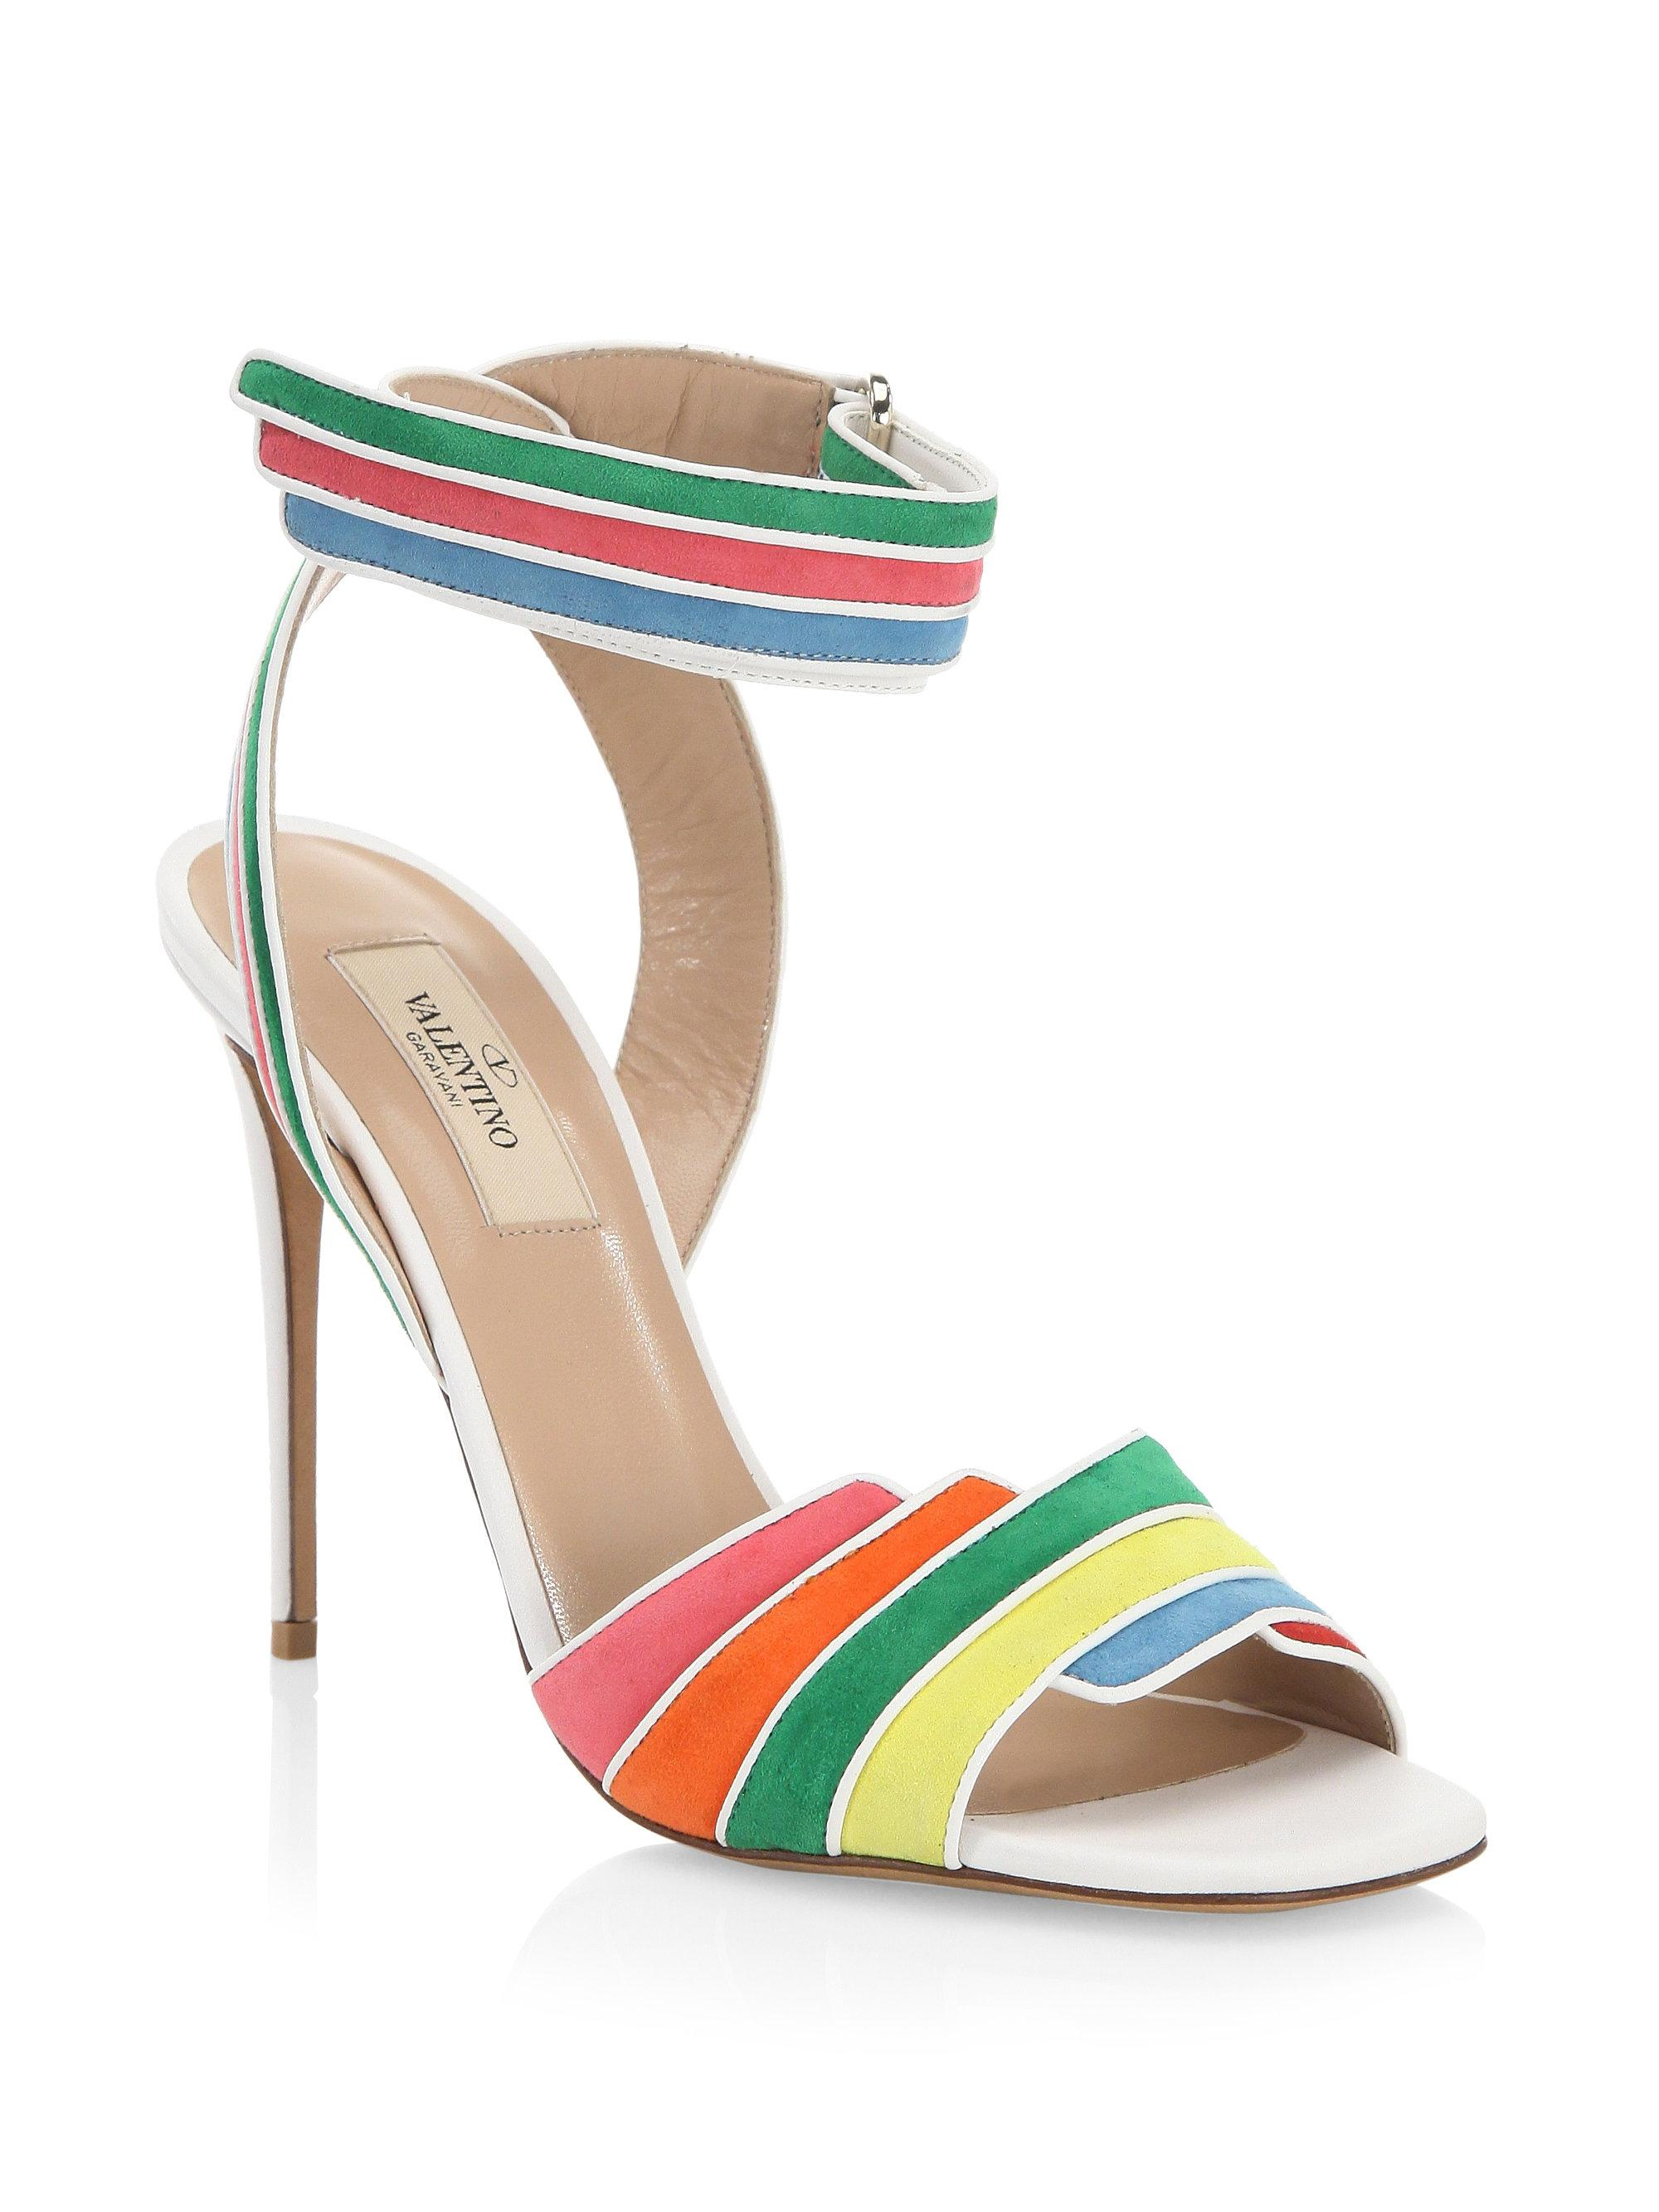 Rainbow Sandals with Ankle Strap in Multi Suede and Nappa Leathers Valentino E4e3gsK9sD